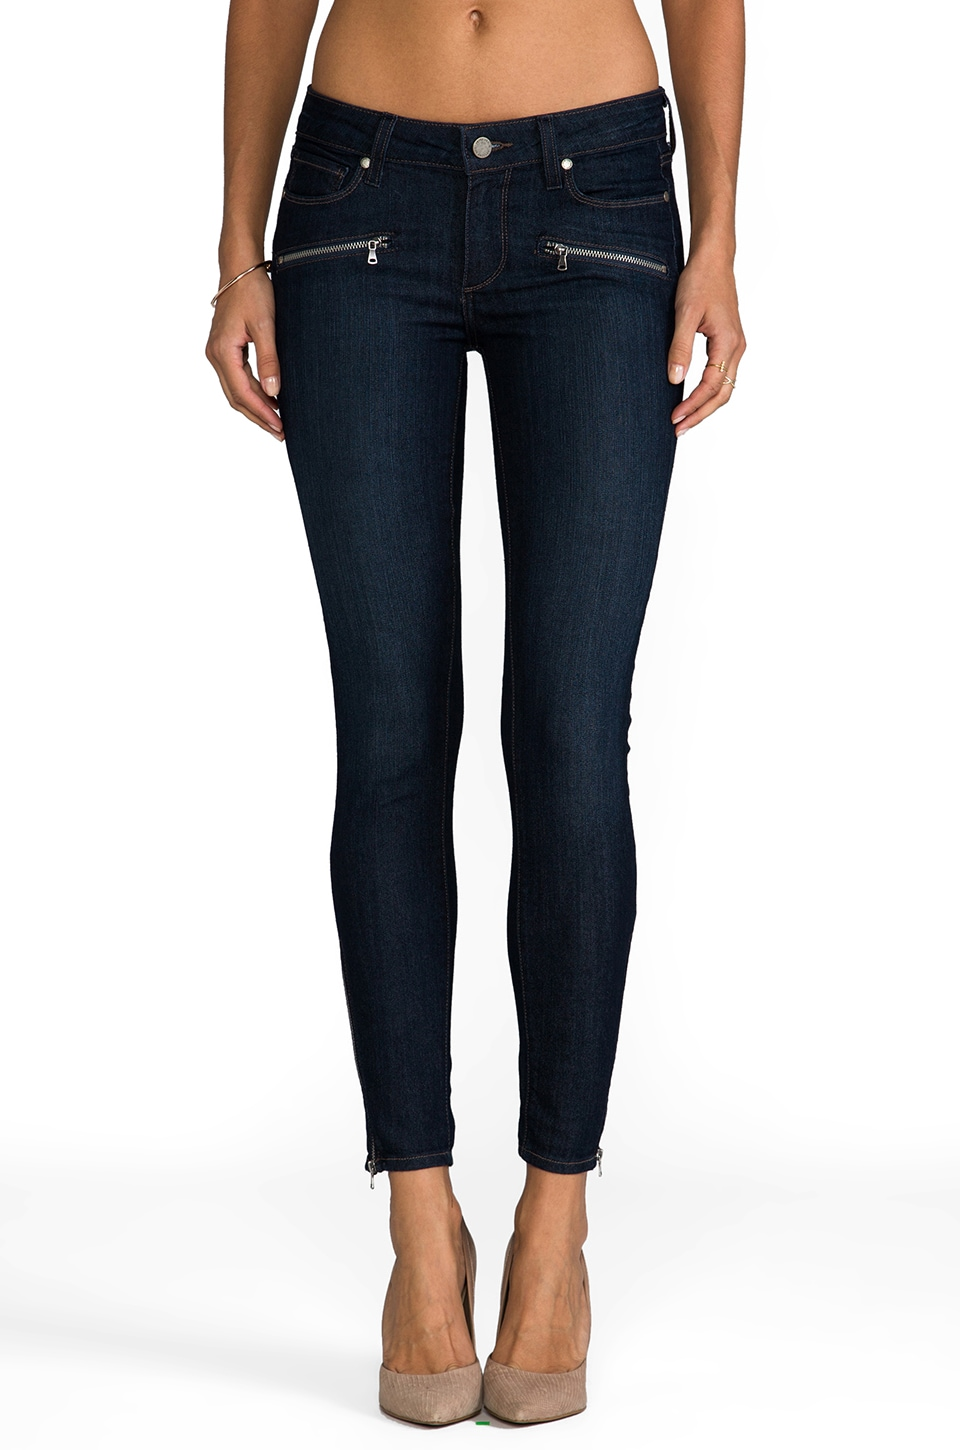 PAIGE Denim Jane Zip Ultra Skinny in Cheyenne